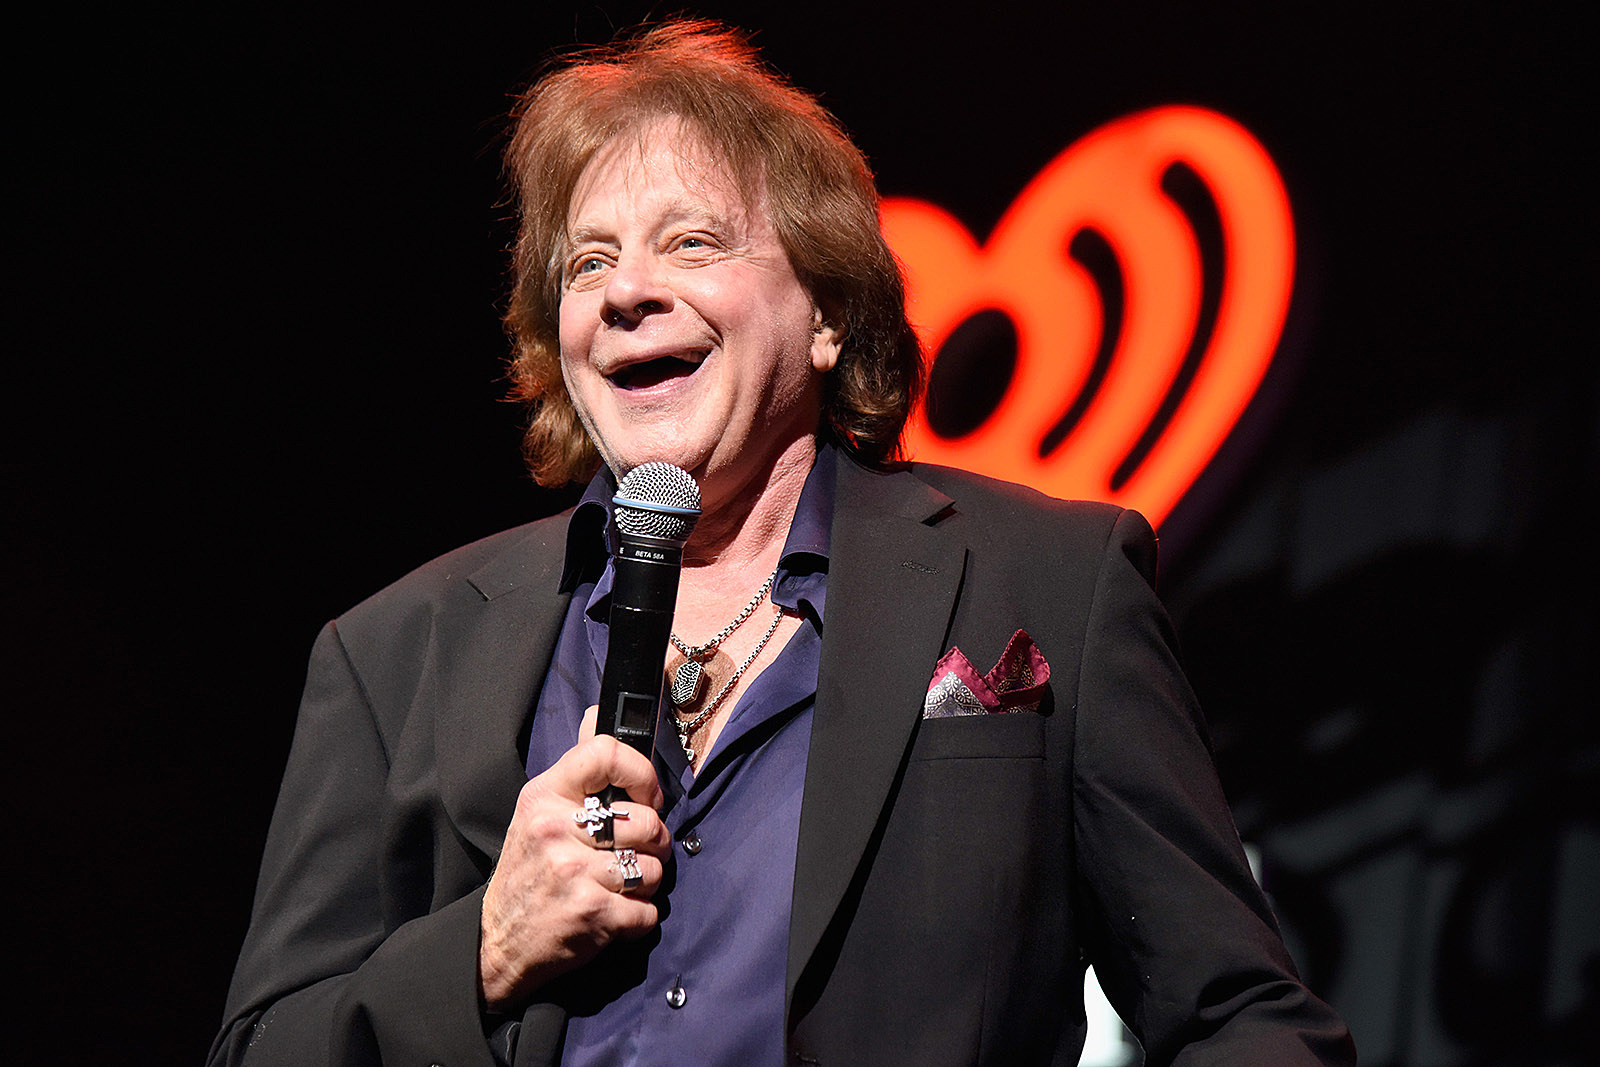 How Eddie Money Overcame His Lifelong Struggle with Alcoholism